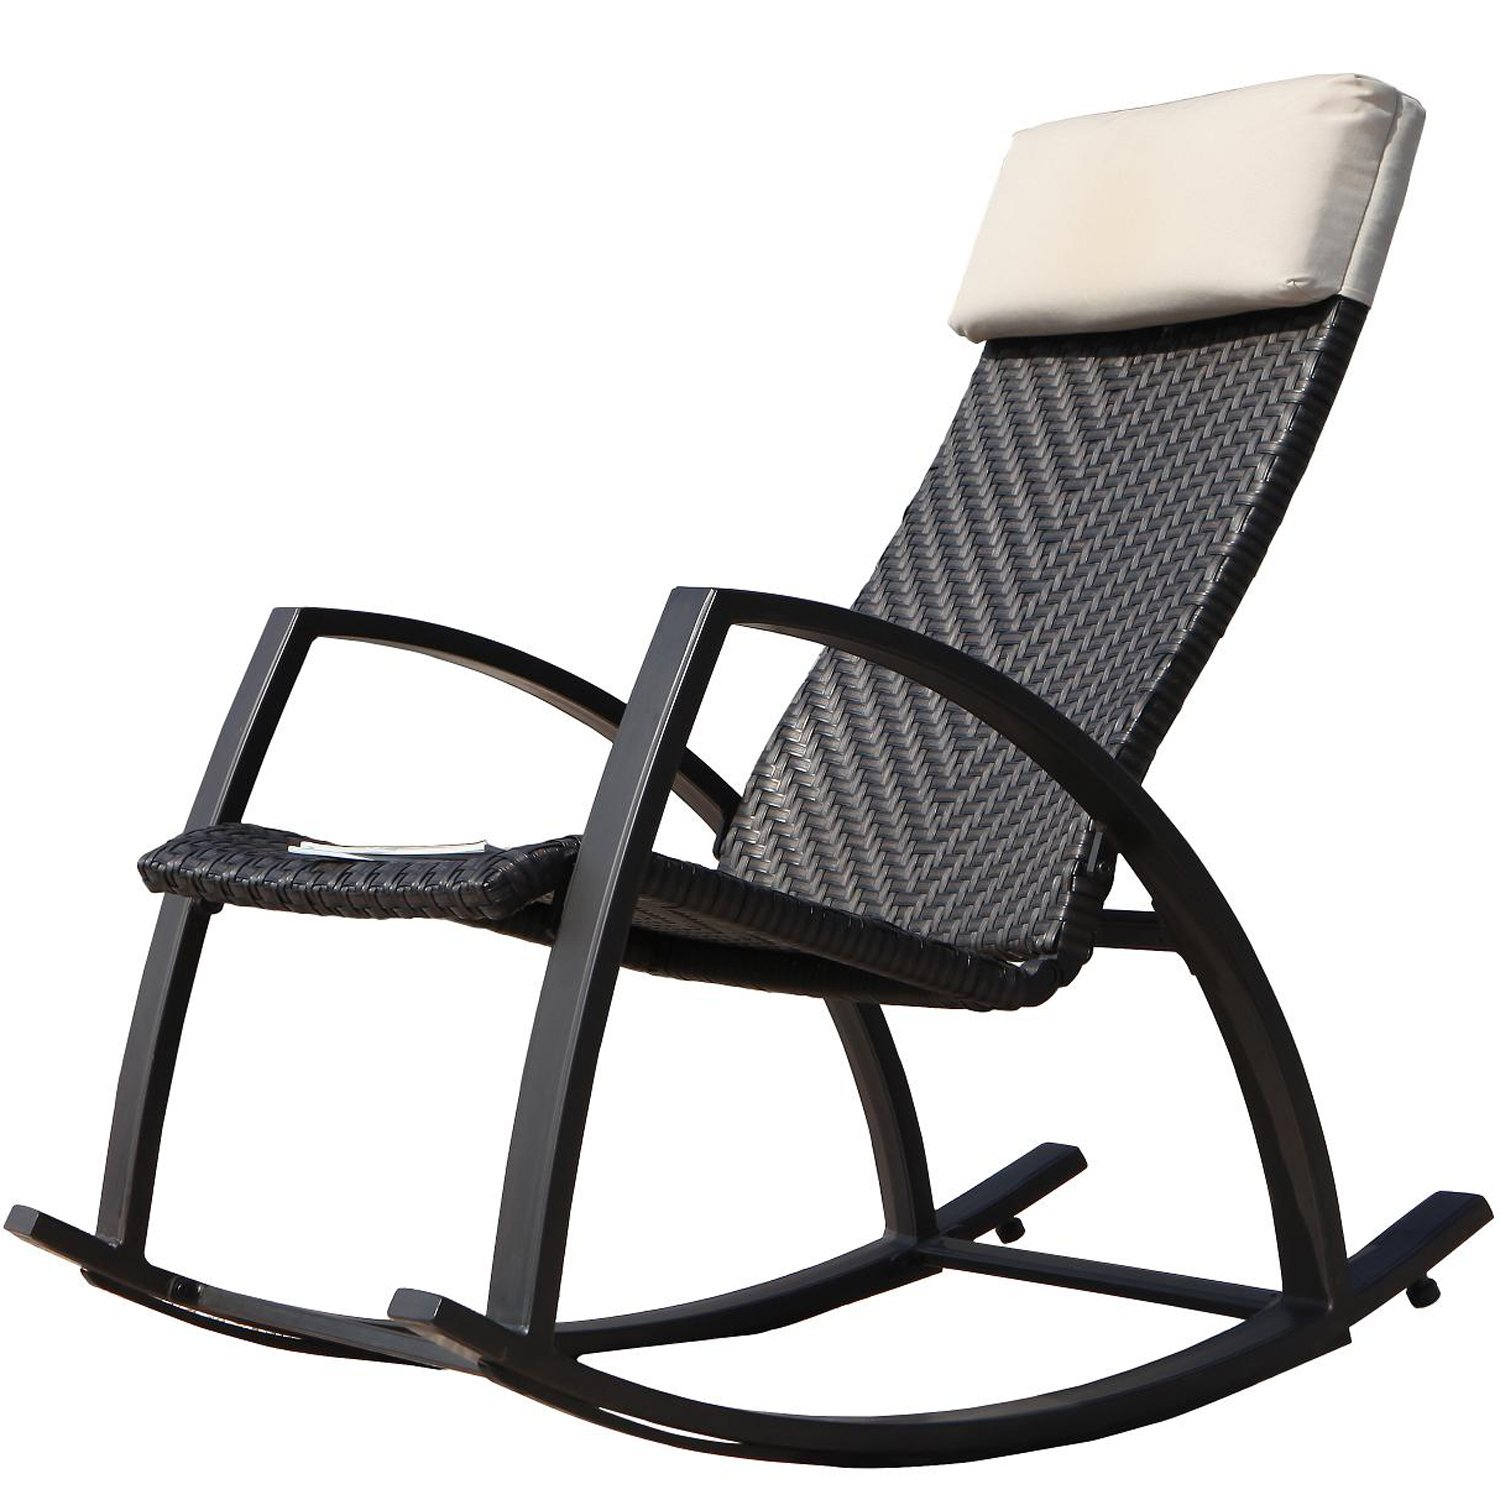 Buy Mainstays Outdoor Wood Rocking Chair Black In Cheap